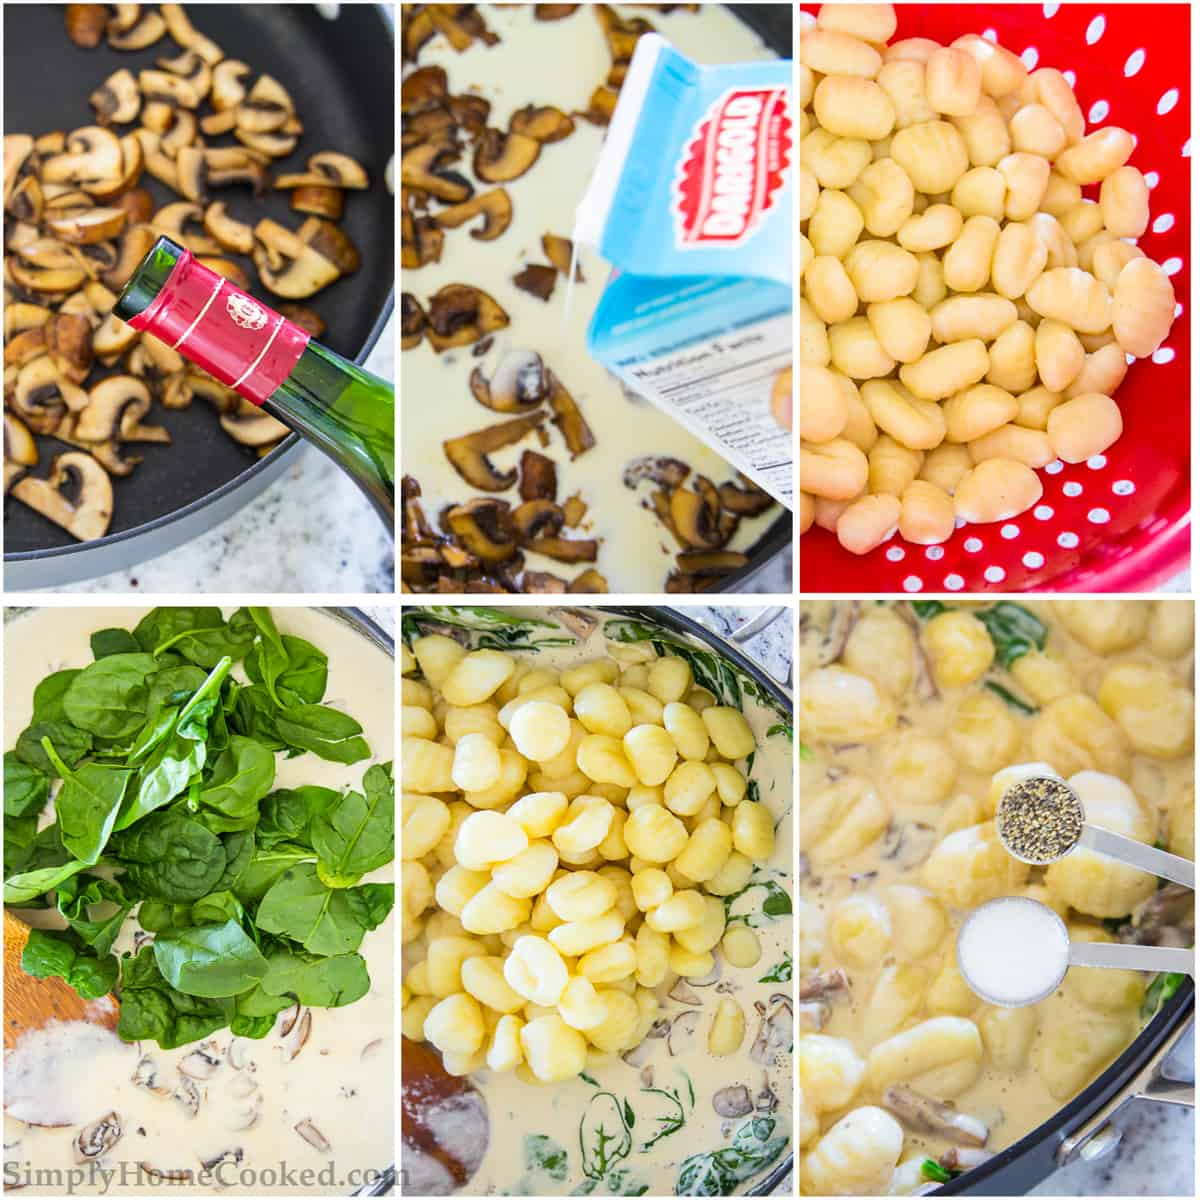 steps to make creamy mushroom and spinach gnocchi